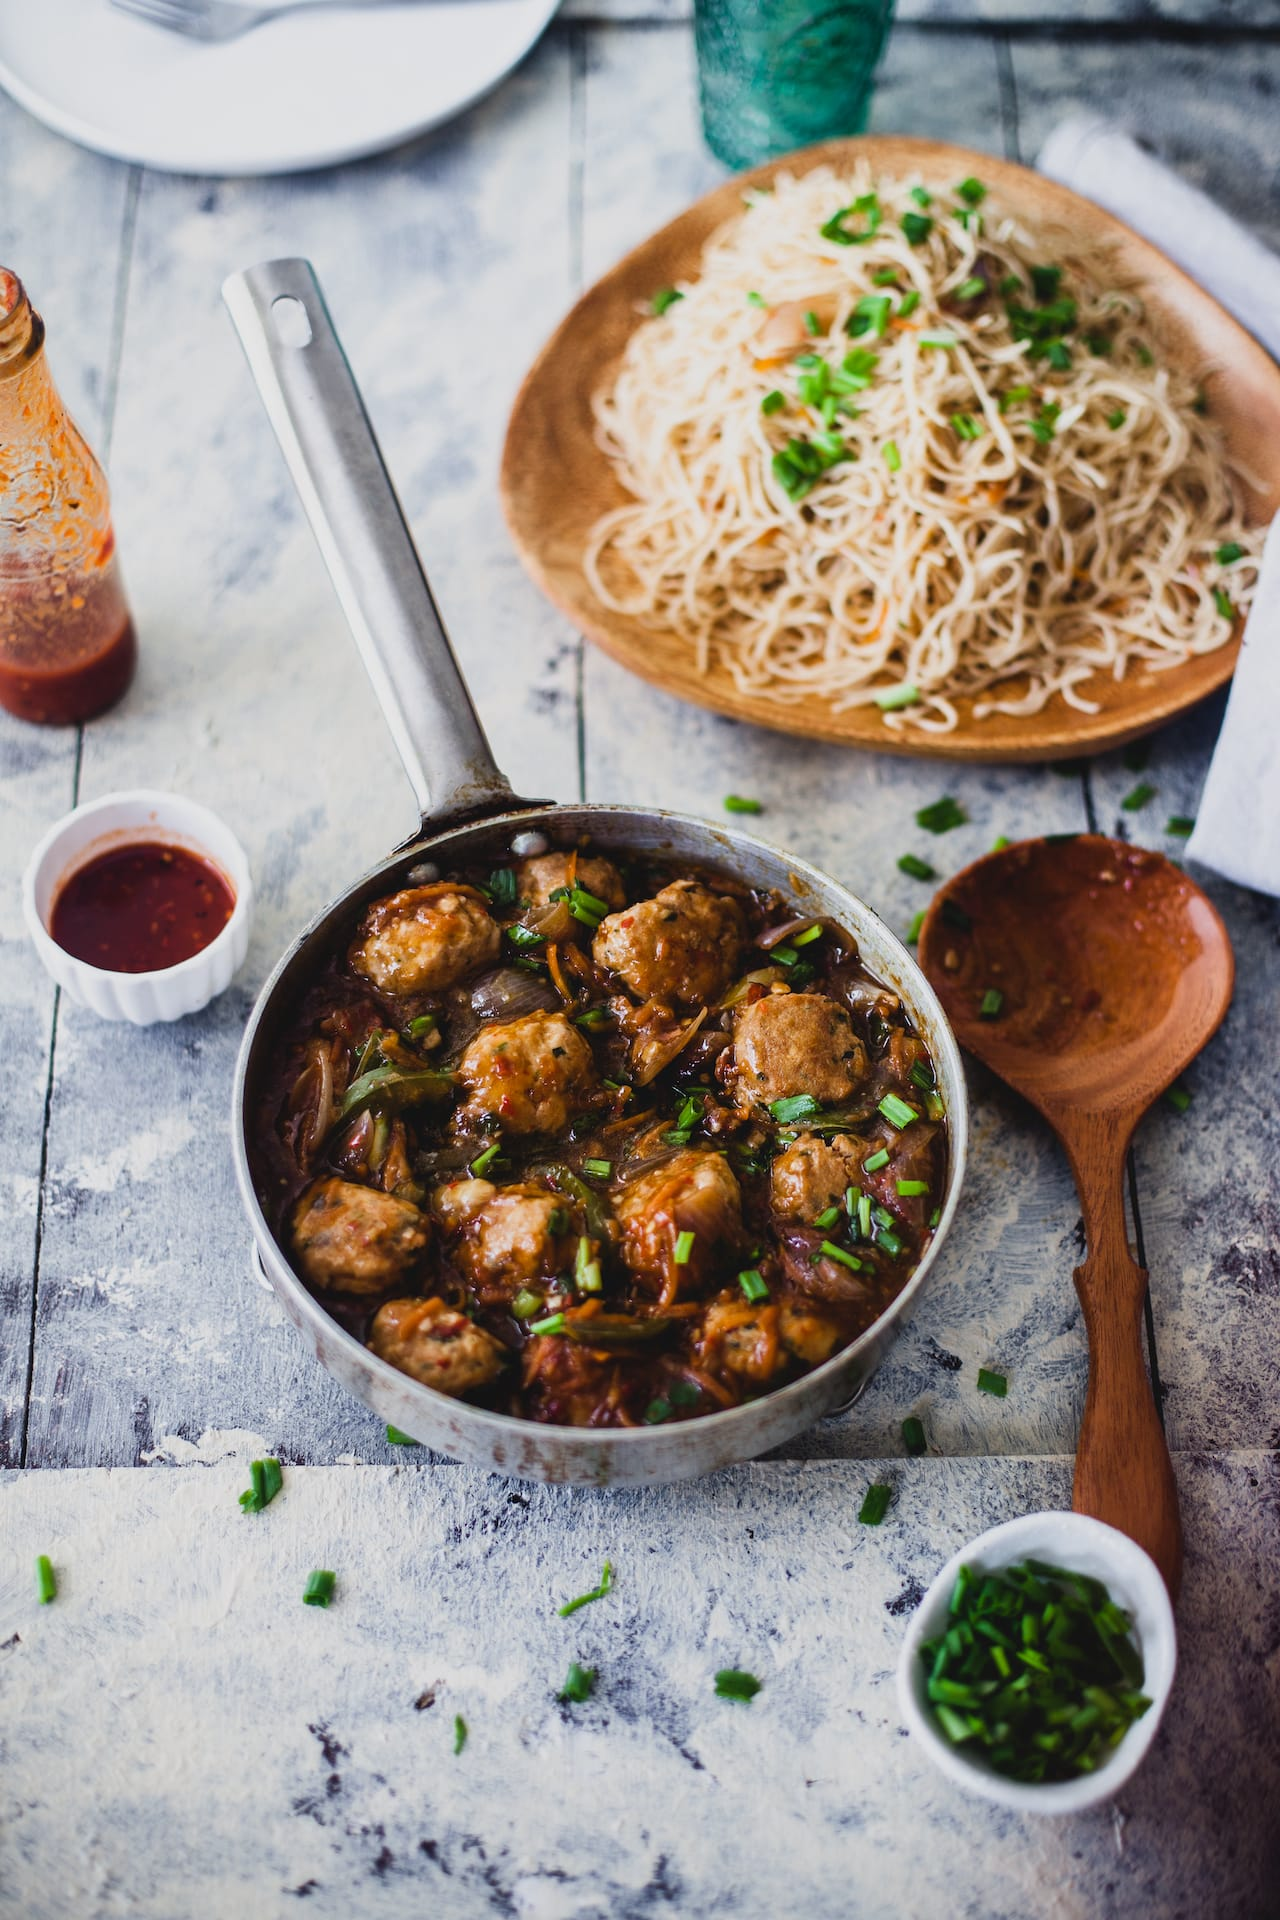 Meat Balls In Hot Garlic Sauce | Playful Cooking